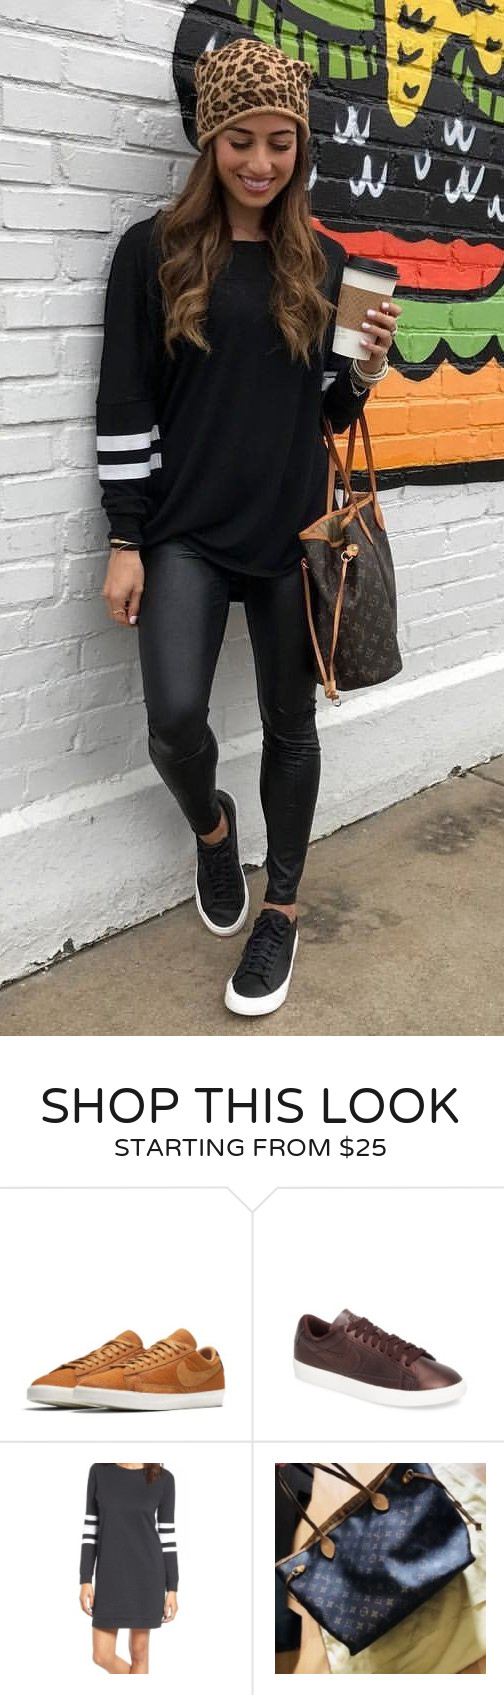 d9b6cd36e49  fall  outfits women s black and white long-sleeved shirt and black pants.  Click To Shop This Look.